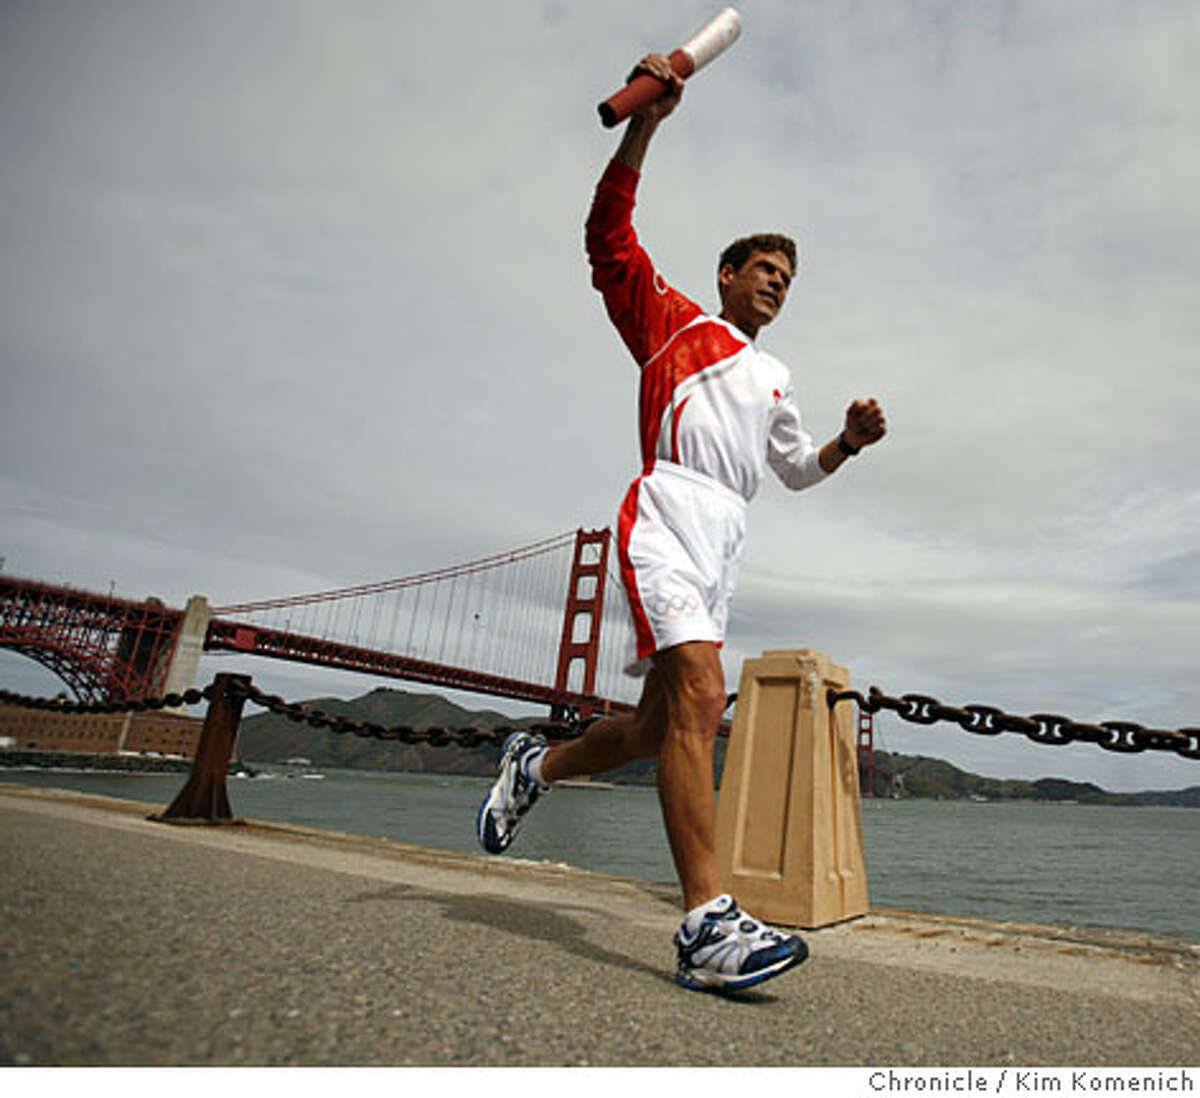 Olympic torchbearer Dean Karnazes, 44, of San Francisco participates in a photo-op for the San Francisco leg of the Olypic torch run near Fort Point in San Francisco, Calif., on April 8, 2008 Photo by Kim Komenich / San Francisco Chronicle